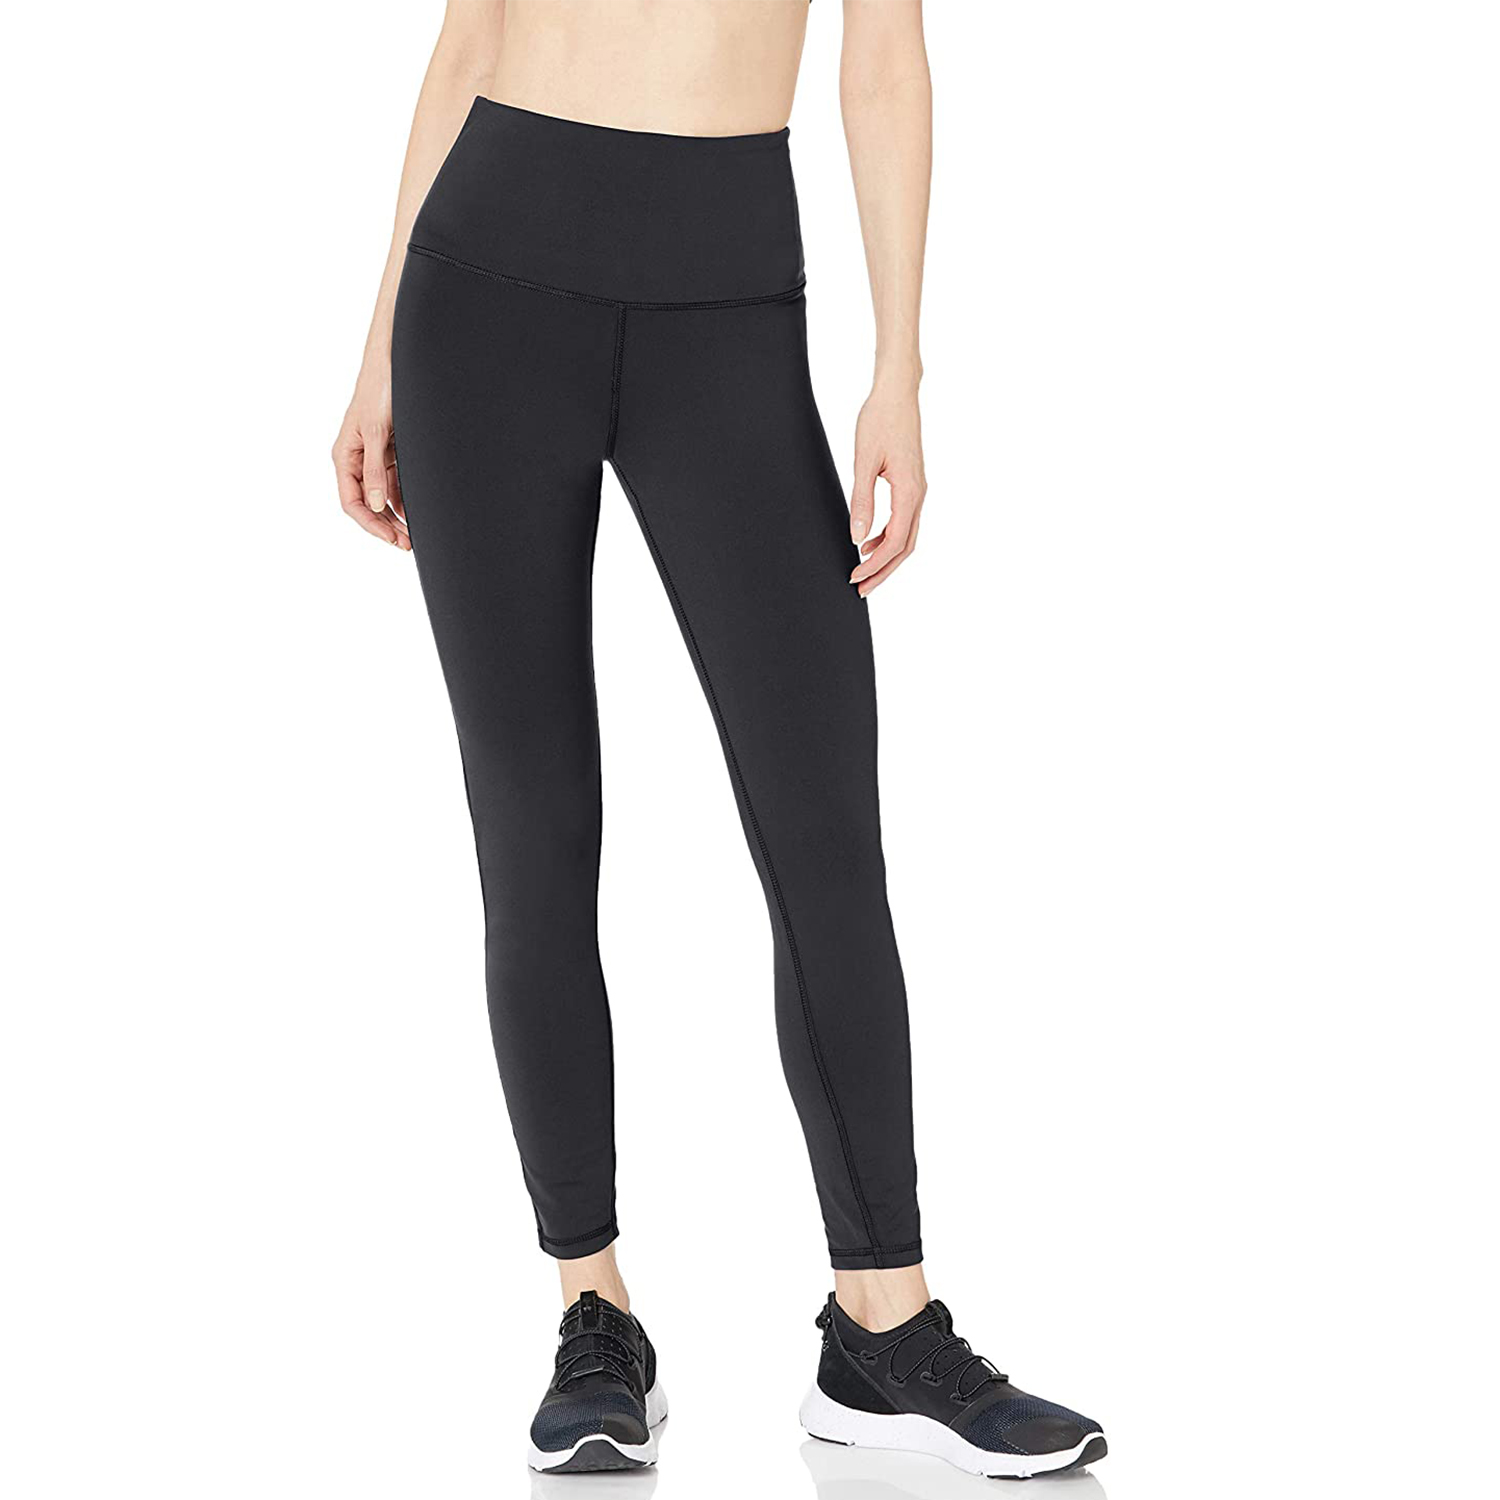 Amazon Essentials Sculpt High-Rise Full-Length Leggings